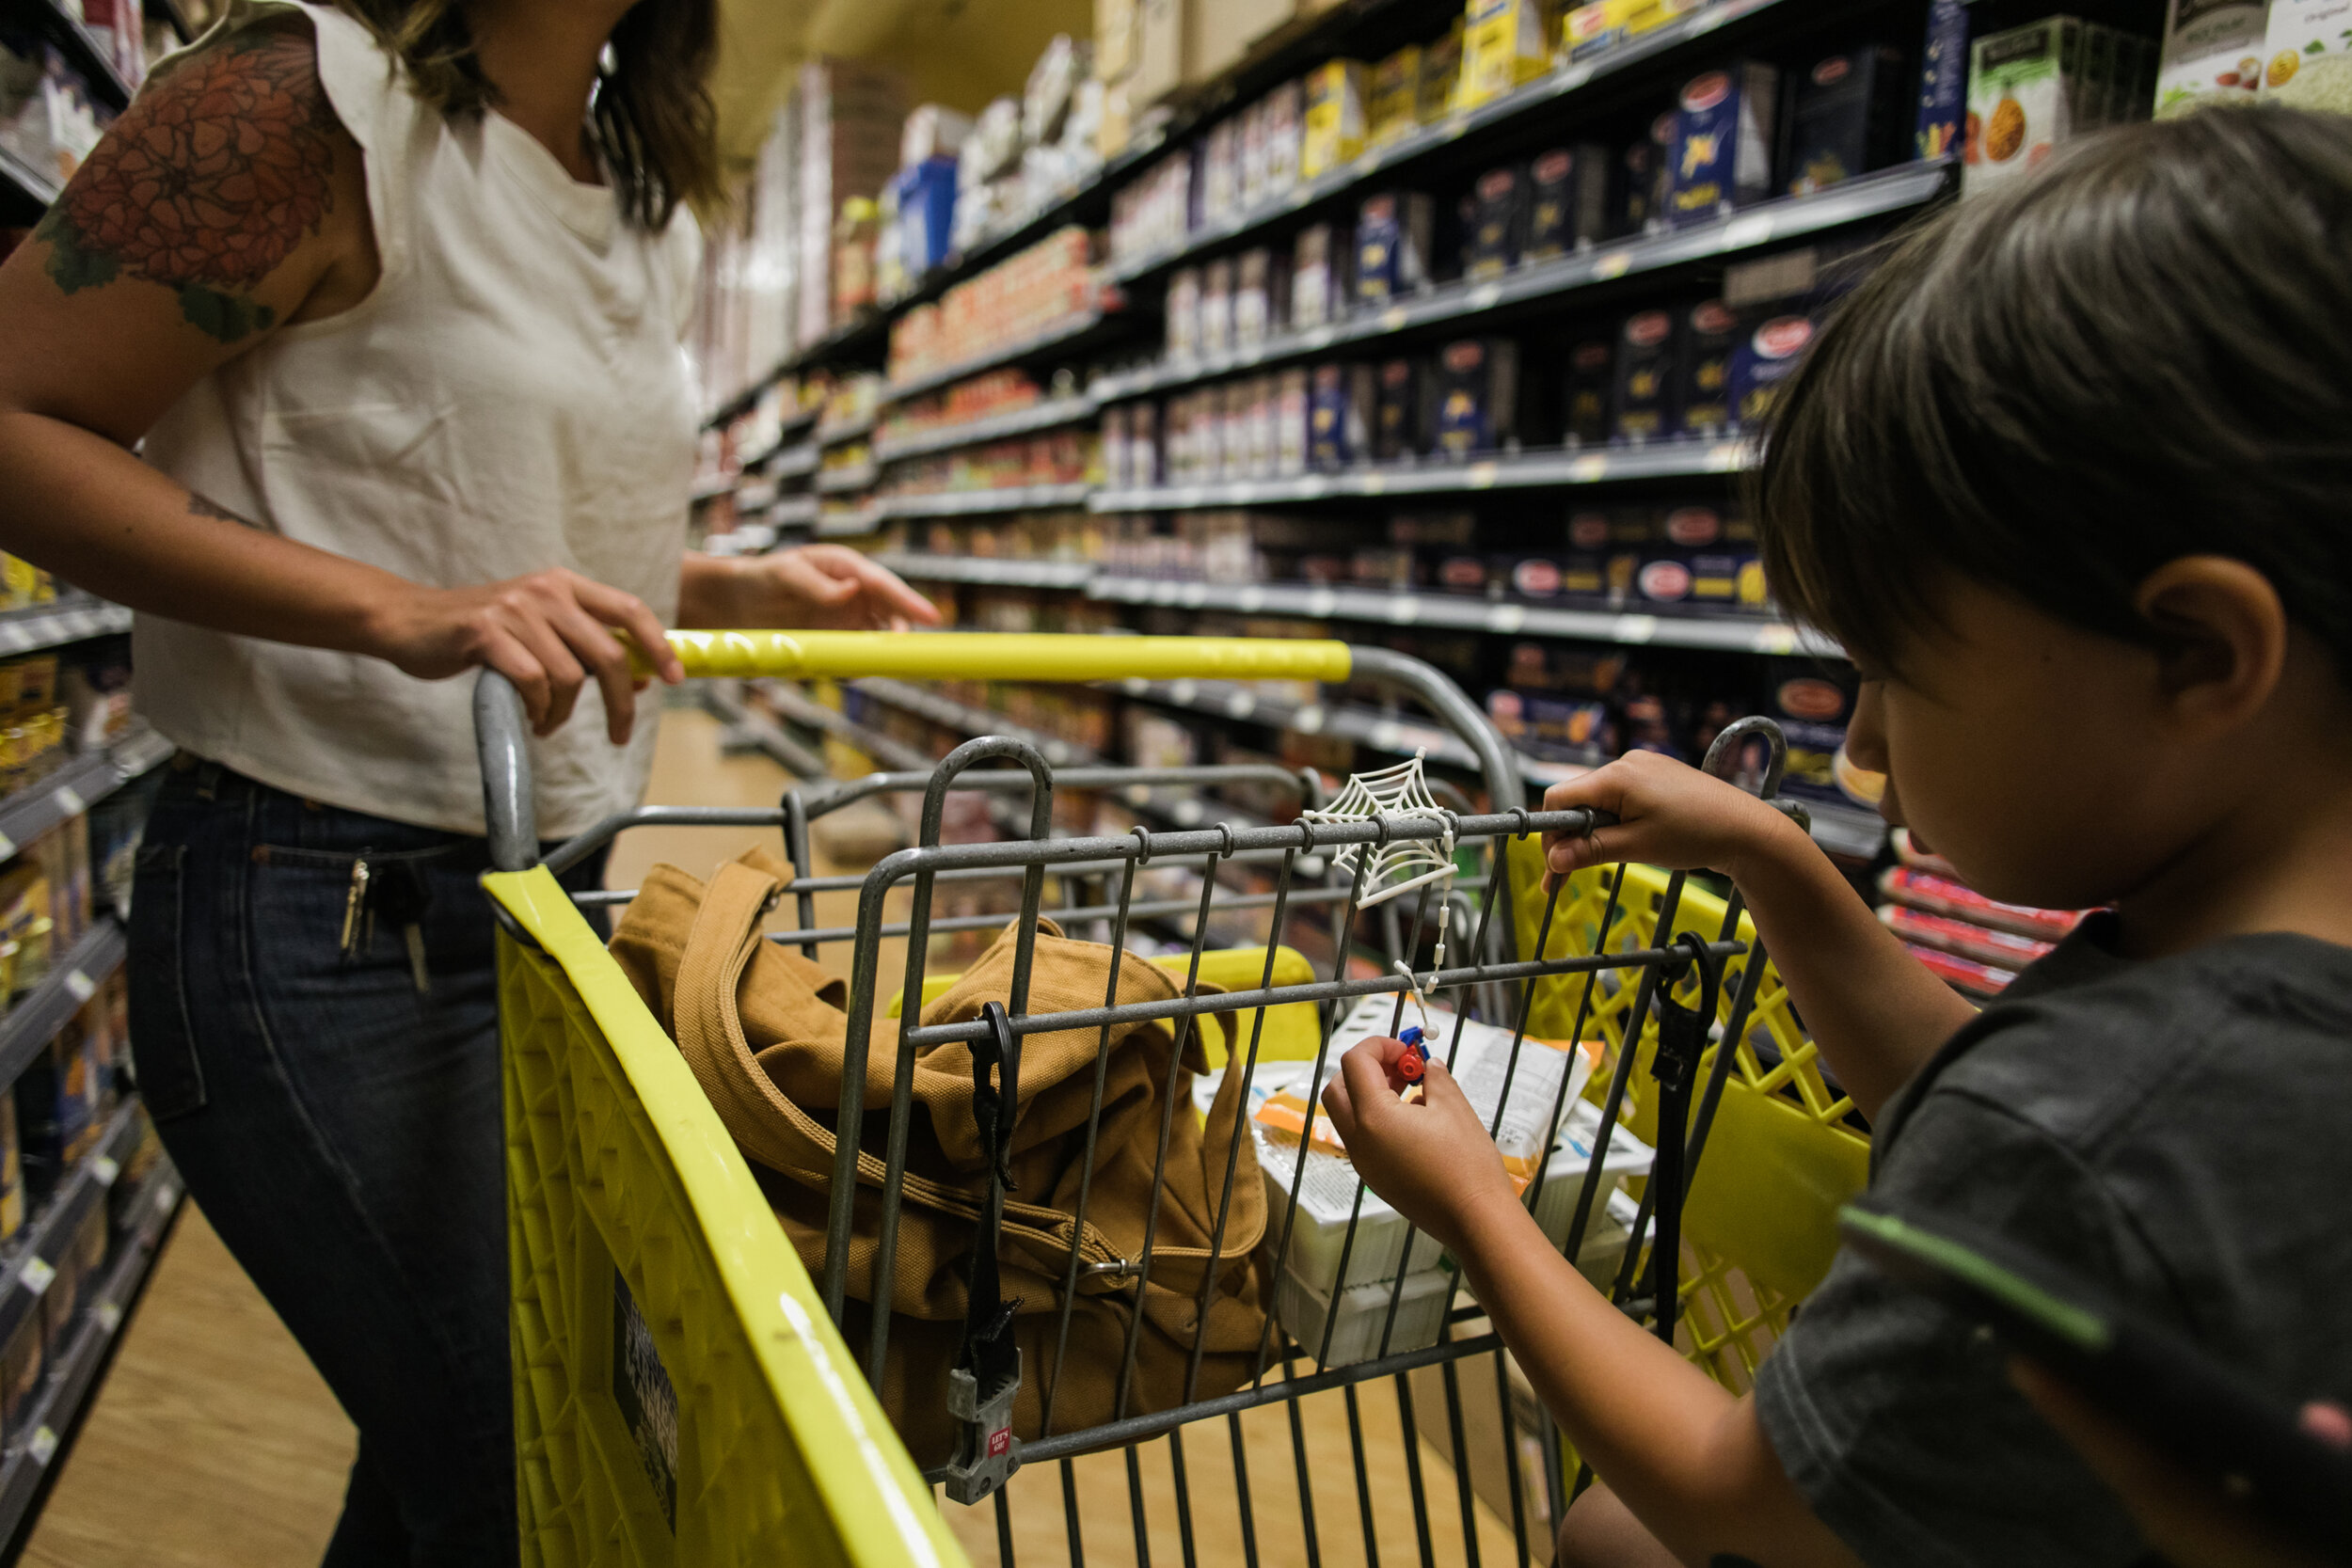 image of a boy sitting in a cart playing with a spiderman toy in a grocery store from a day in the life photography session